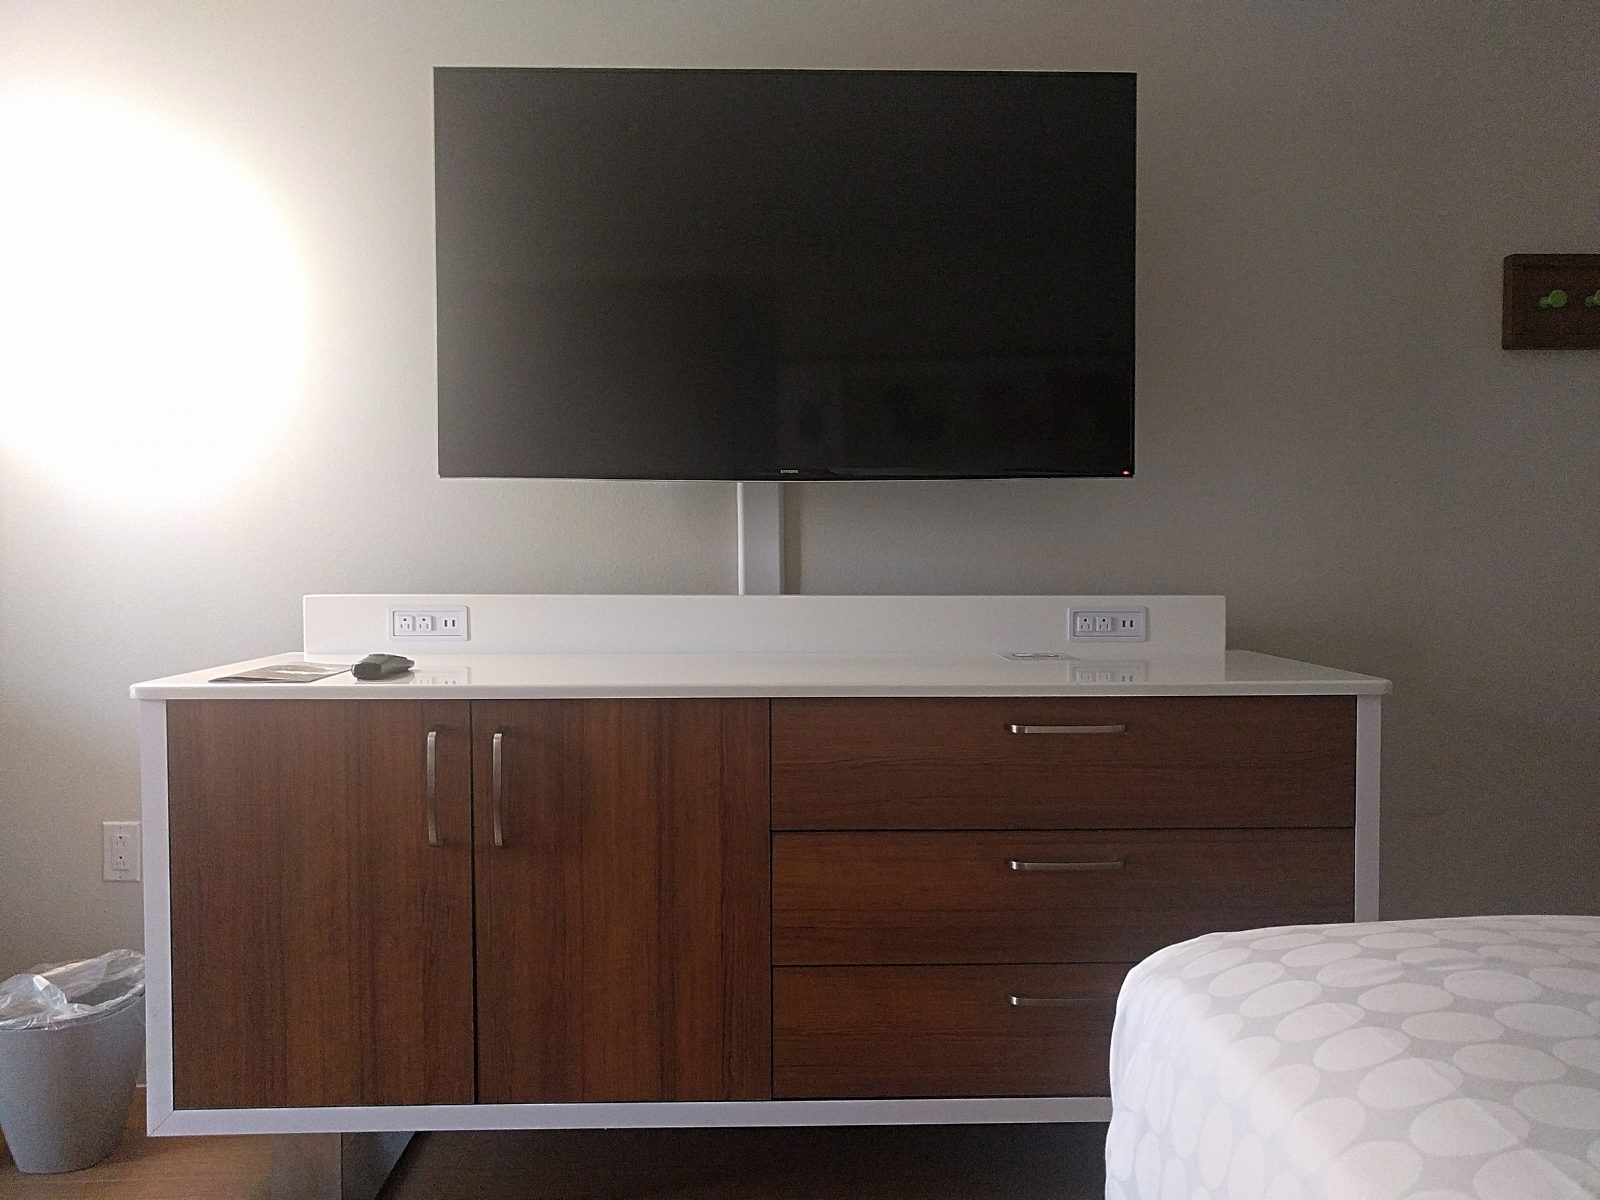 tv and dresser in the room